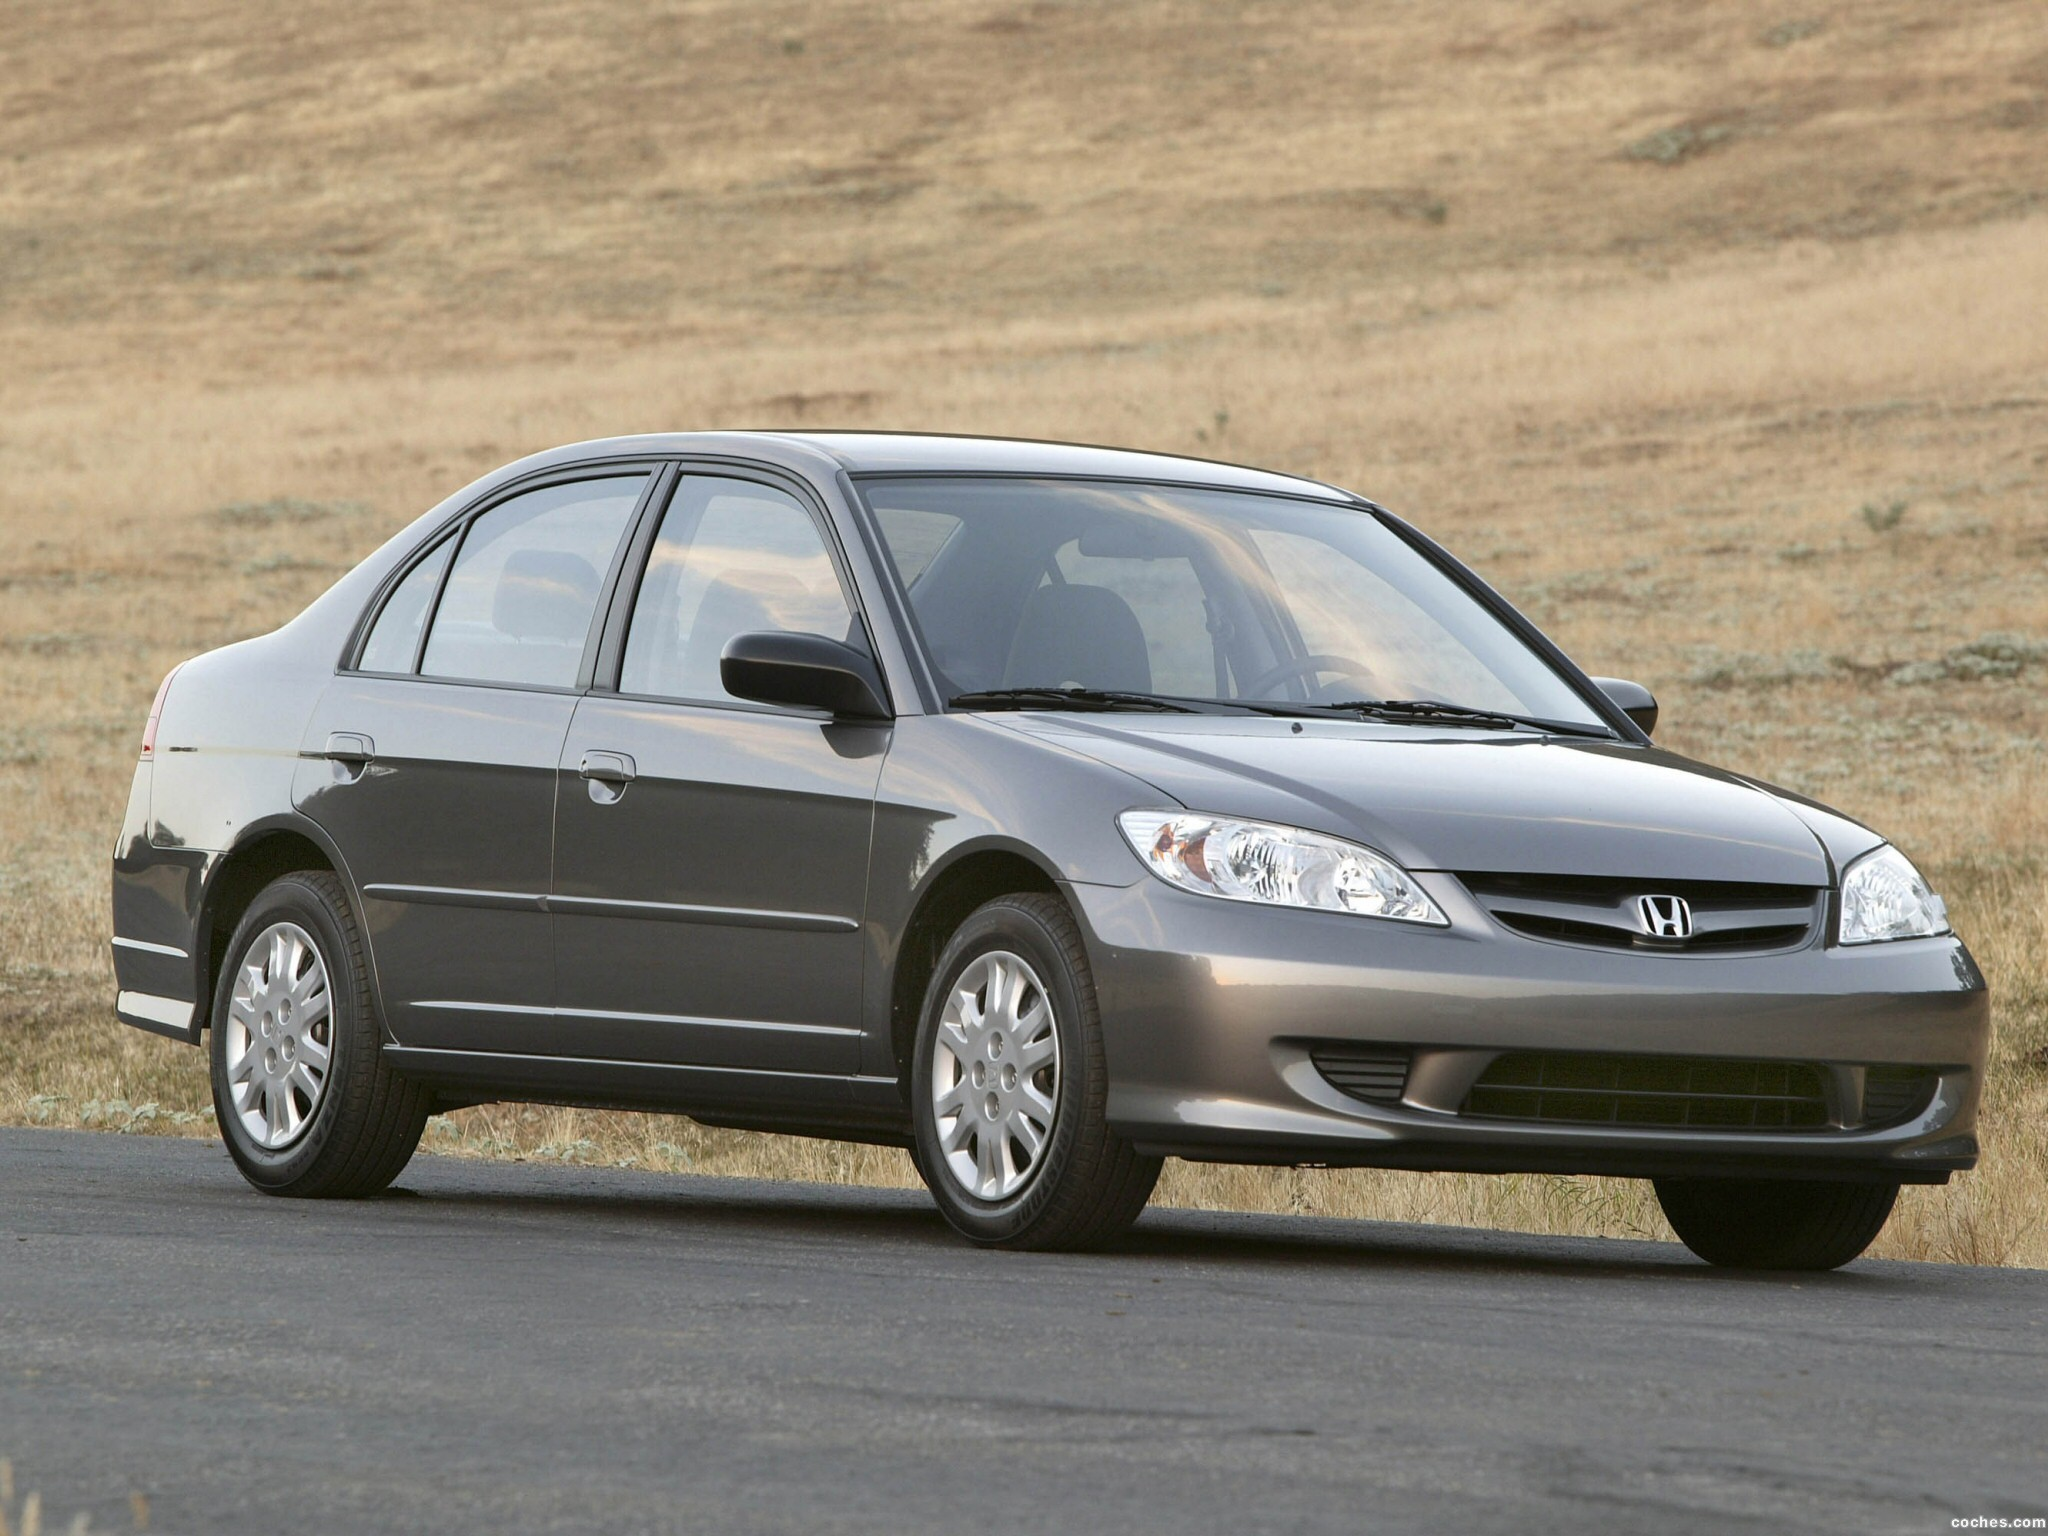 Foto 0 de Honda Civic Sedan 2004